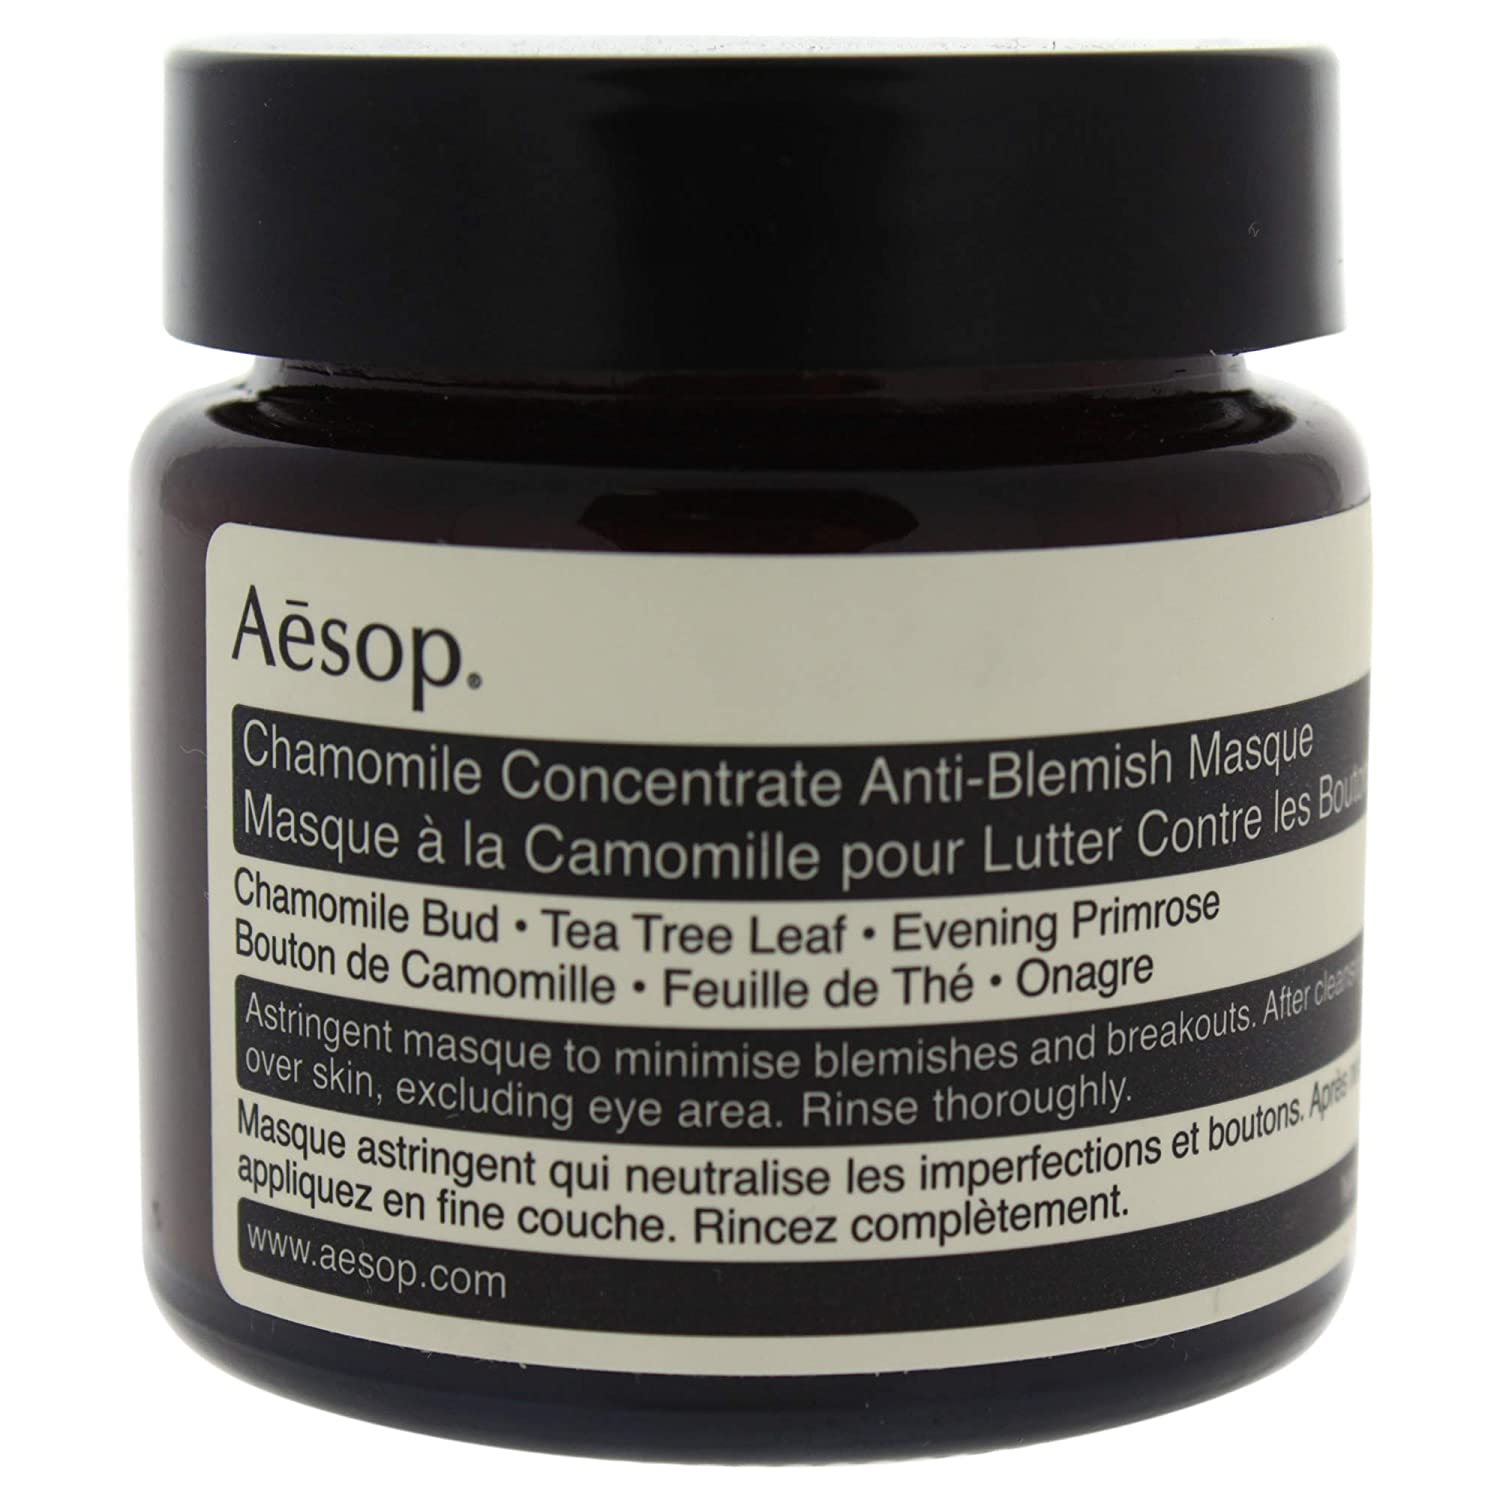 Top 10 Best Face Mask for Men (2020 Reviews & Buying Guide) 8